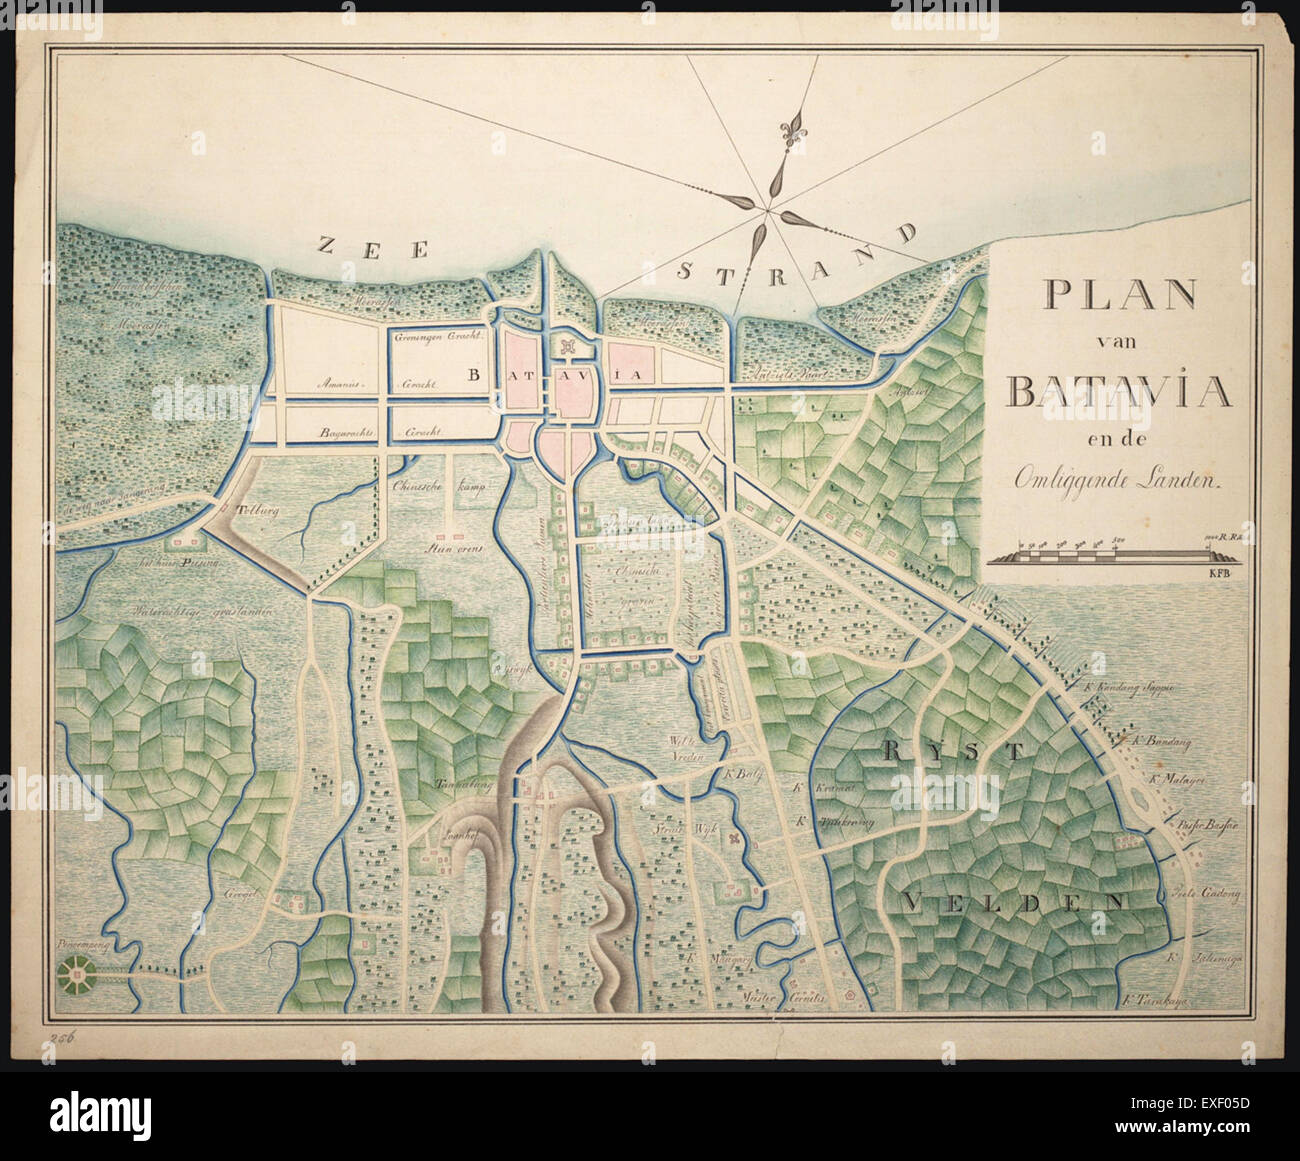 Old Map 1800 Stock Photos   Old Map 1800 Stock Images   Alamy Plan van Batavia en de omliggende landen  1800 1850 Map   Stock Image